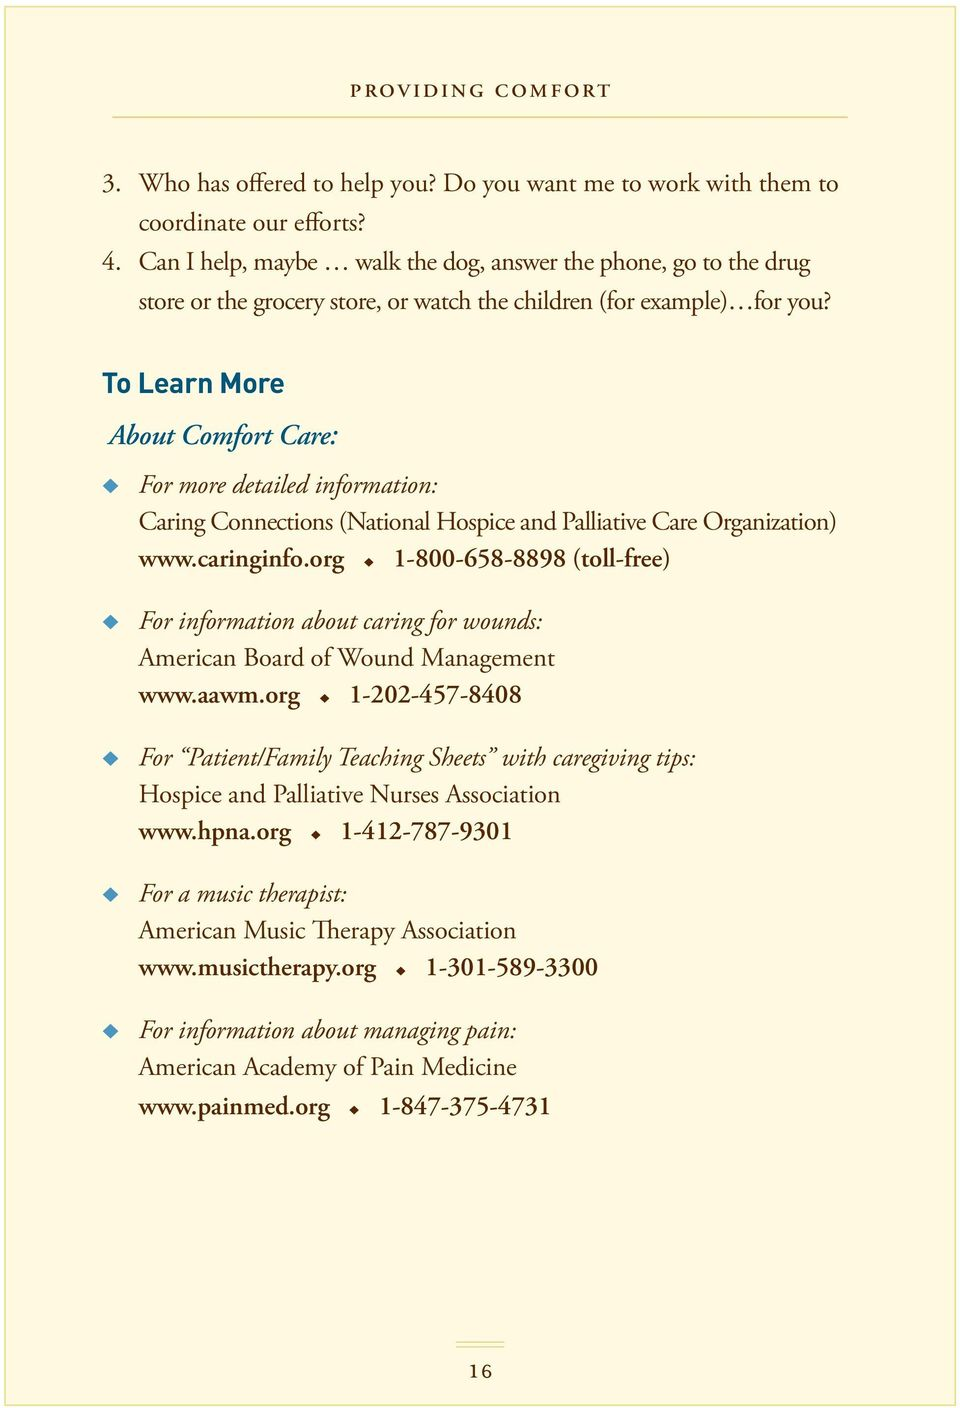 To Learn More About Comfort Care: u For more detailed information: Caring Connections (National Hospice and Palliative Care Organization) www.caringinfo.